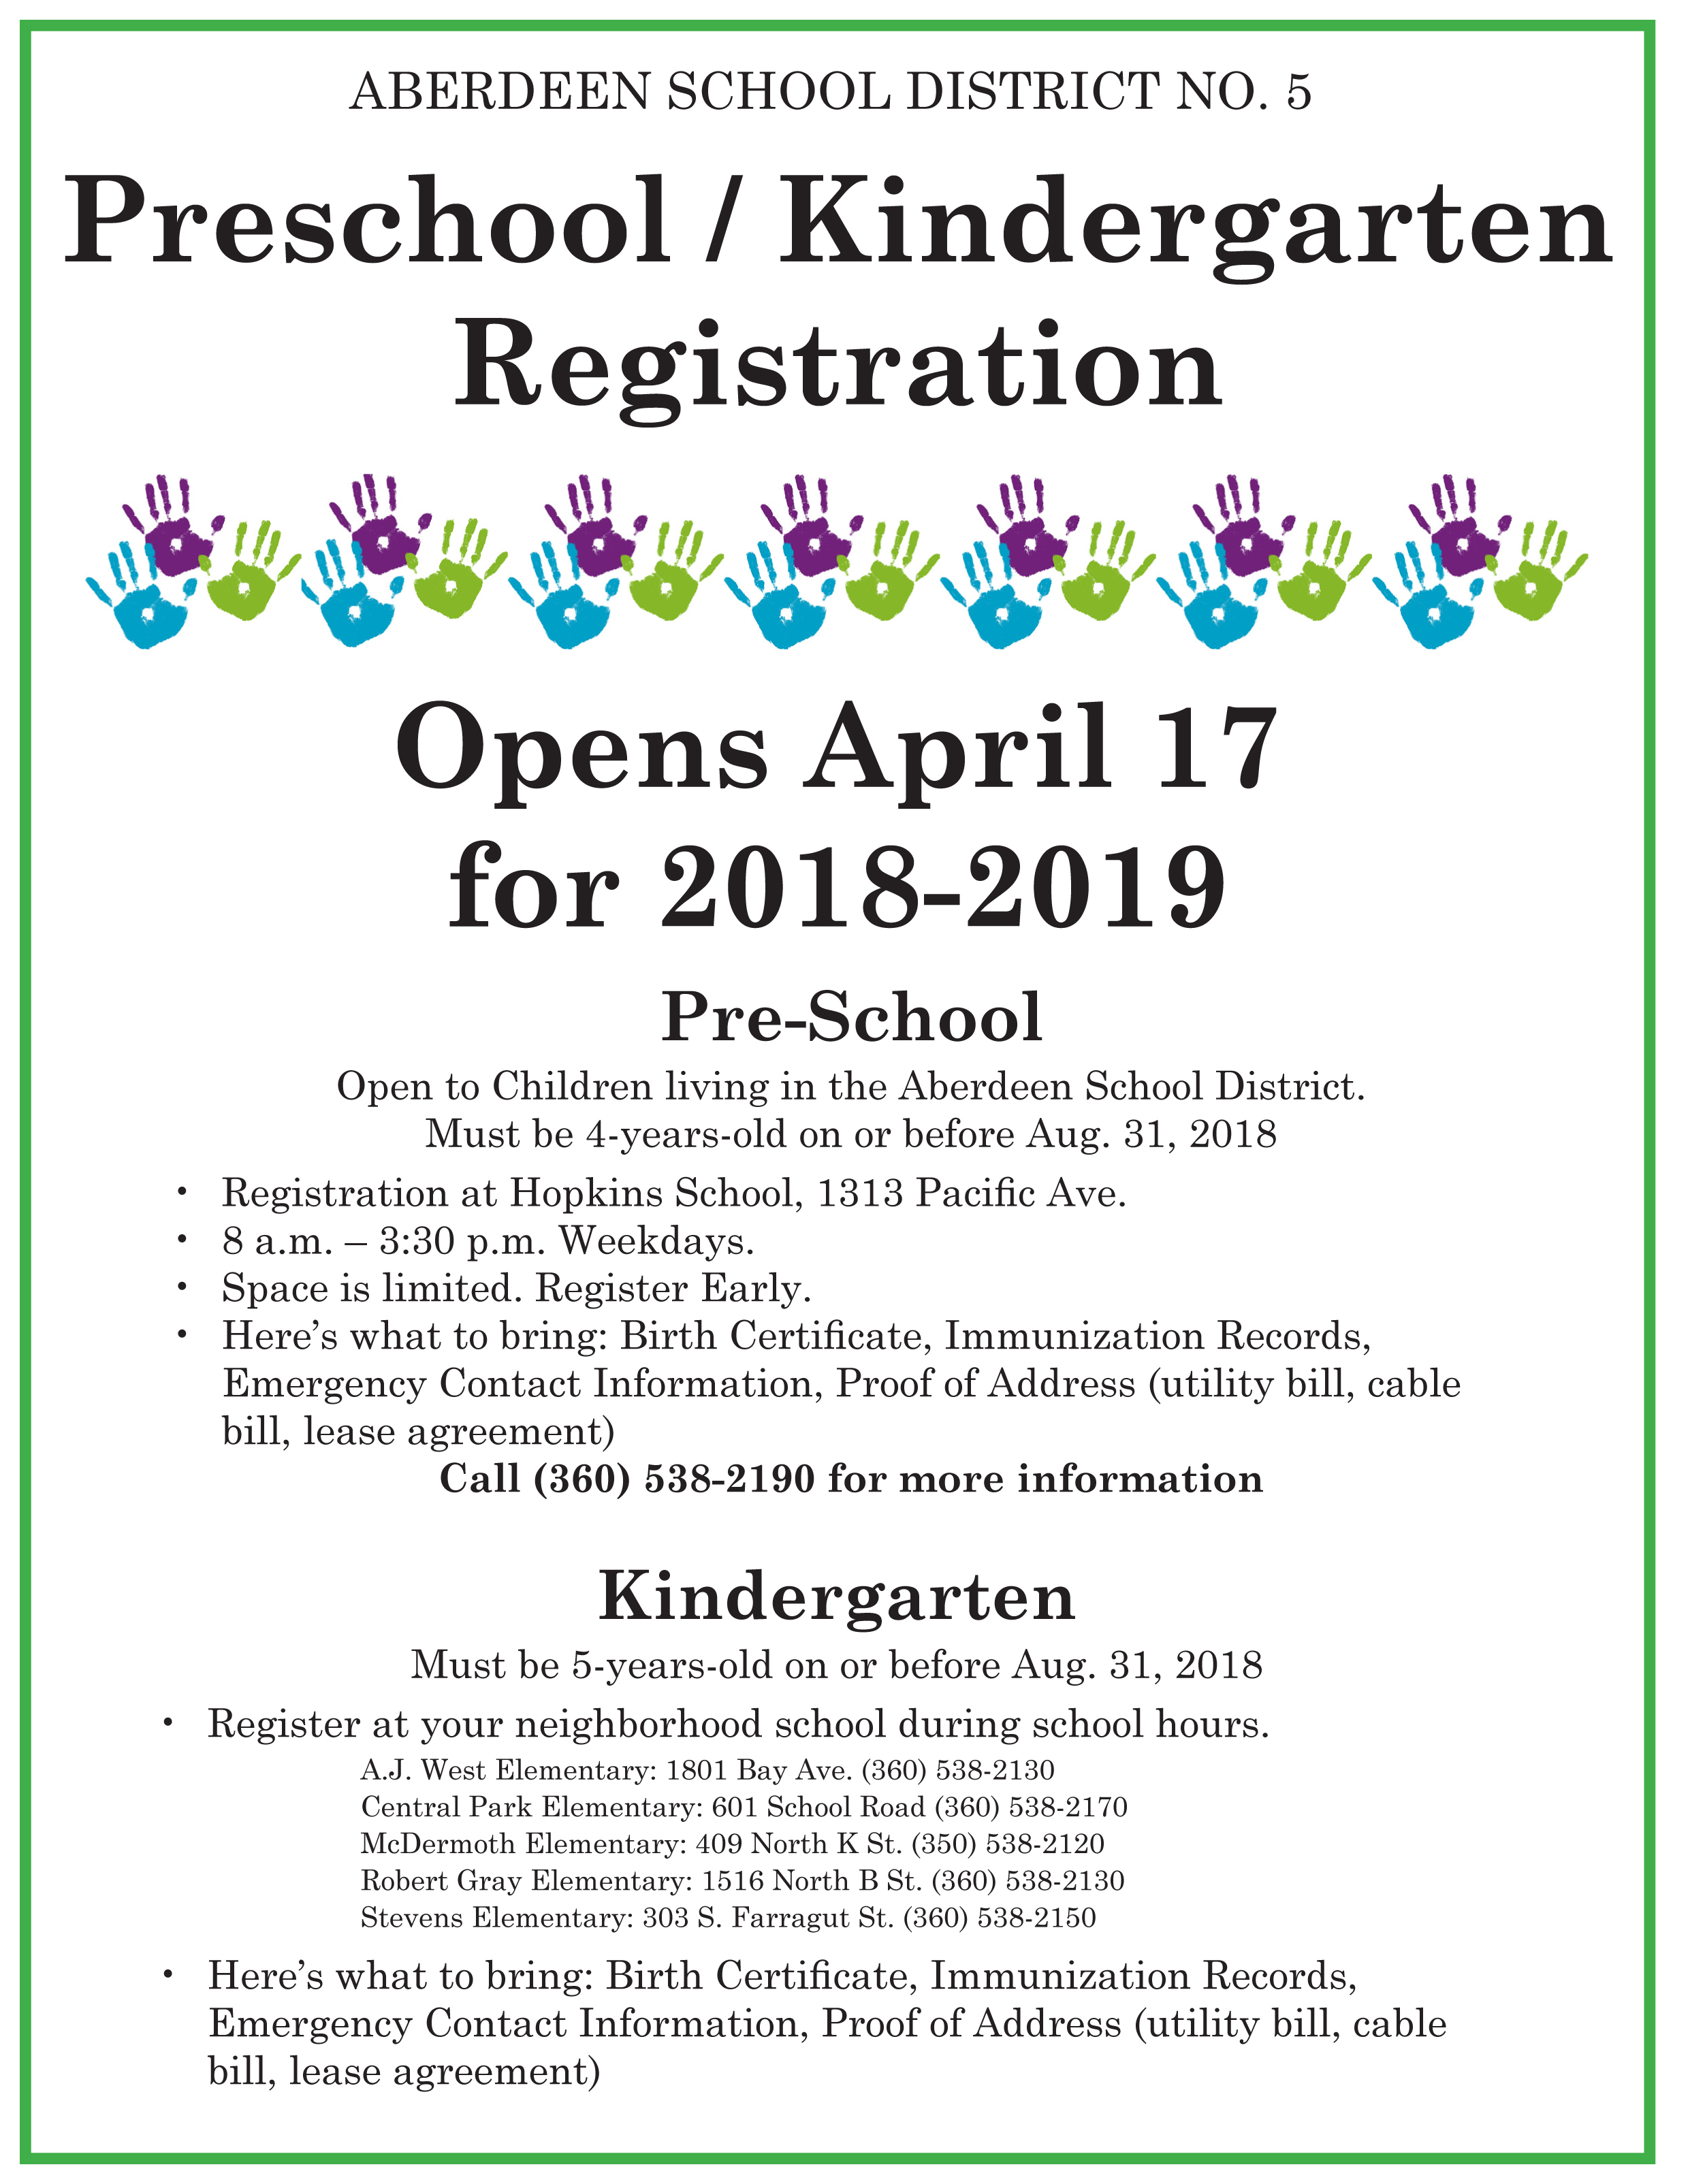 Preschool/Kindergarten Registration 2018